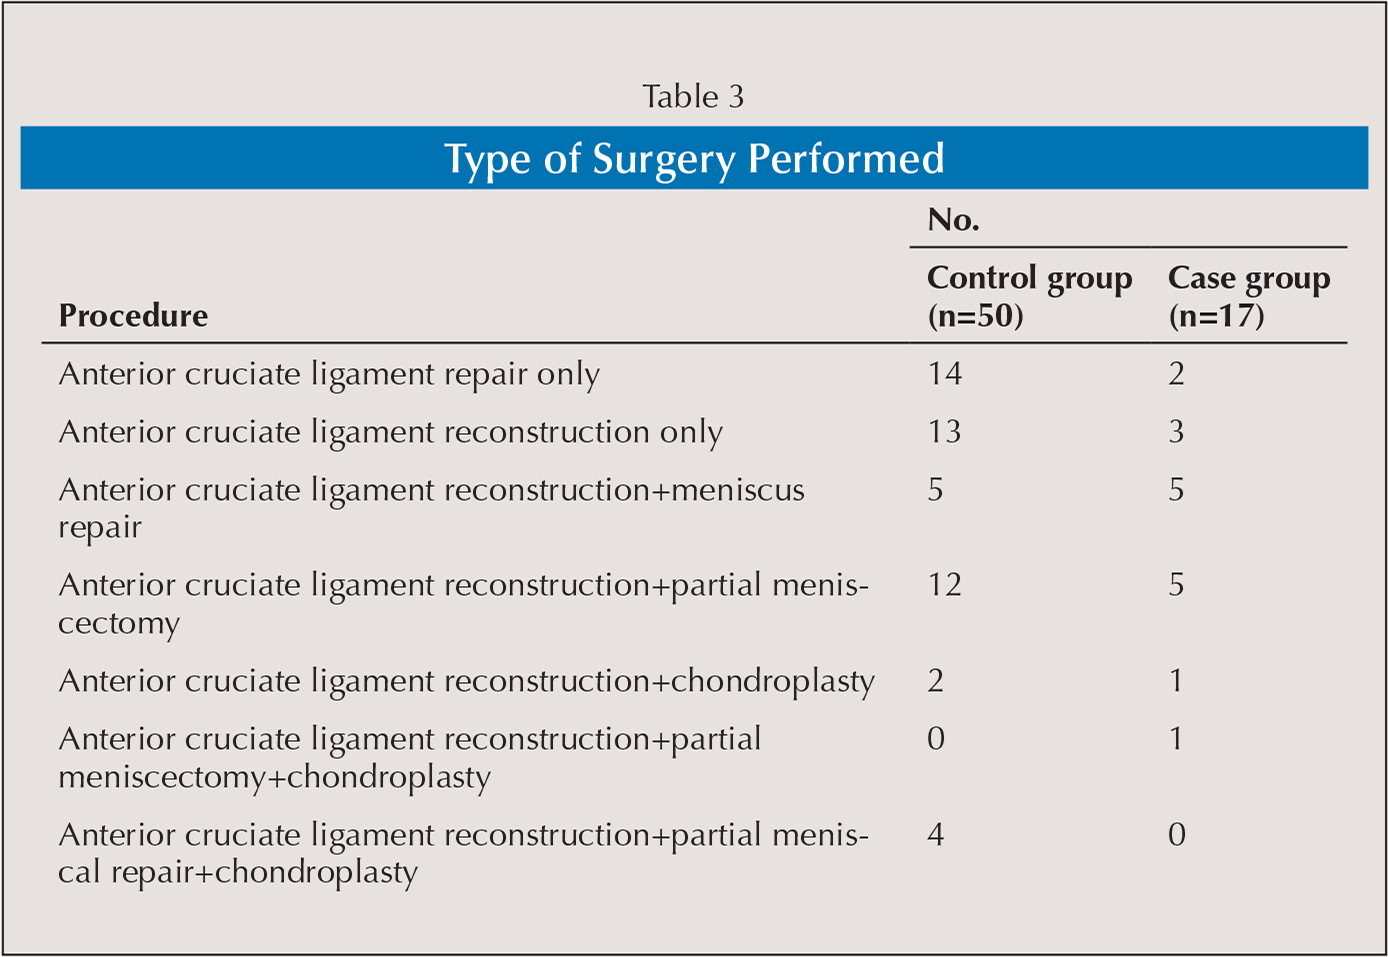 Type of Surgery Performed